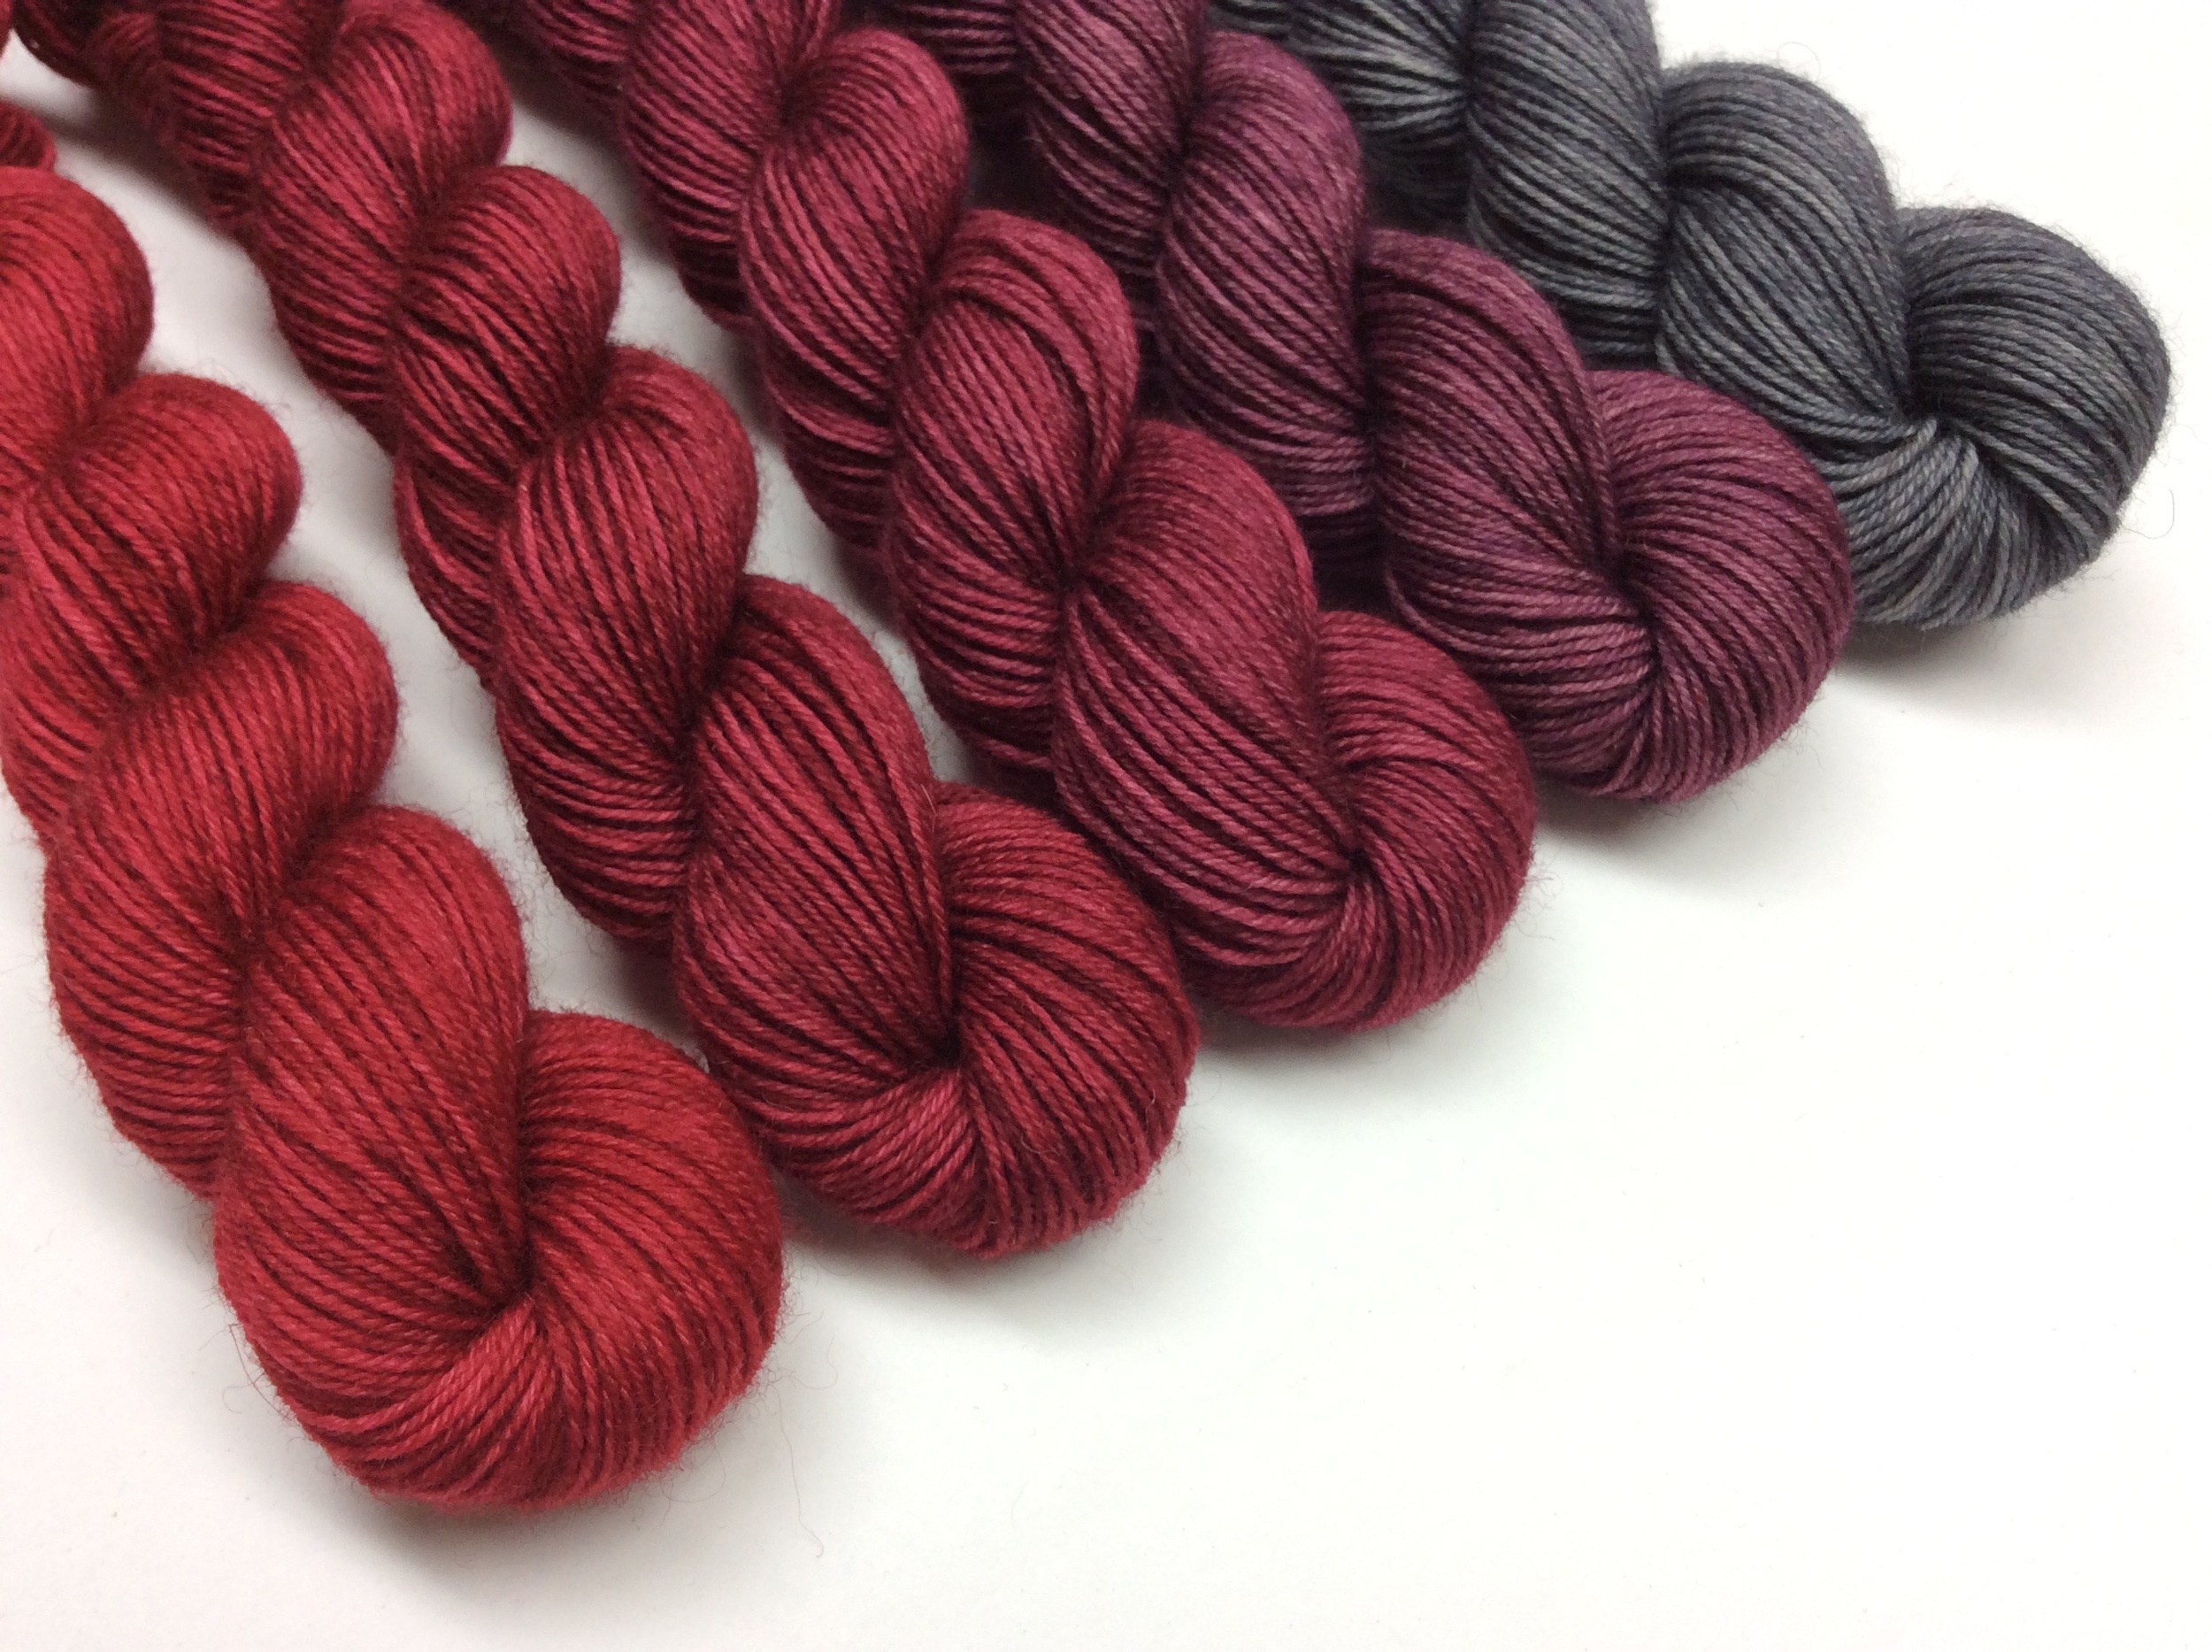 Gradient in Soliloquy - Cherry Pie to London Fog